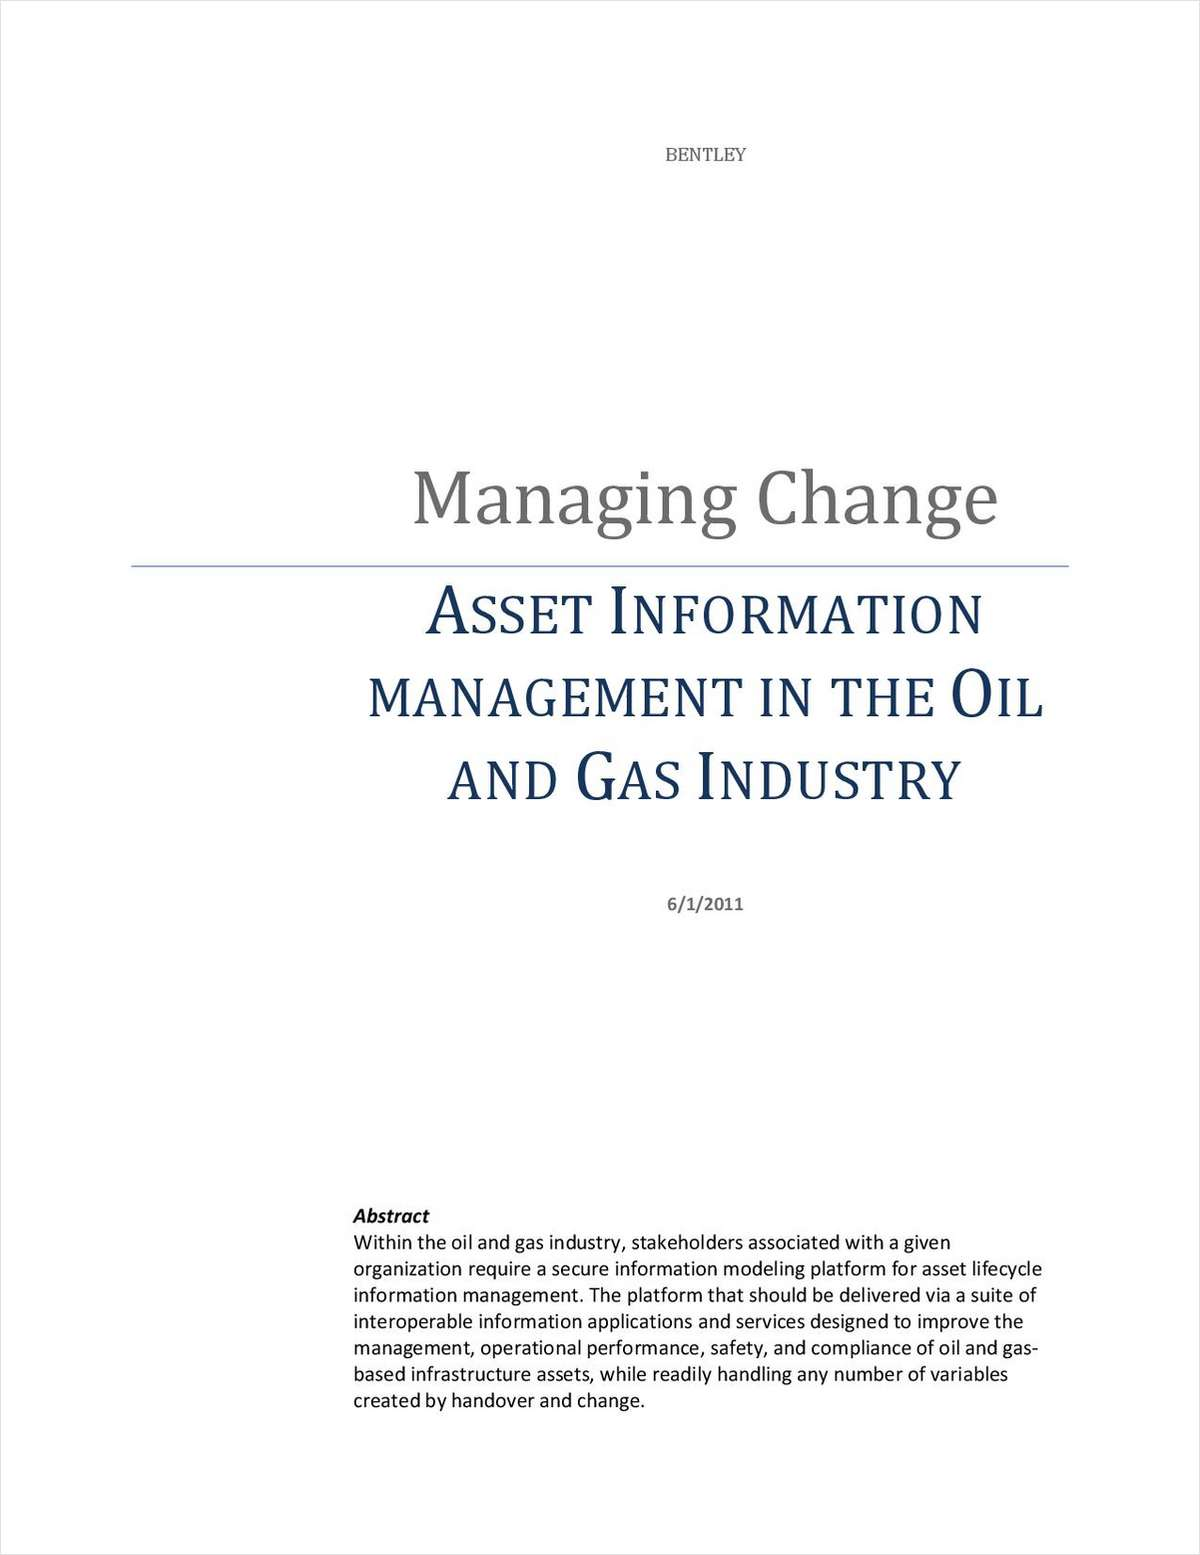 Managing Change – Asset Information Management in the Oil & Gas Industry